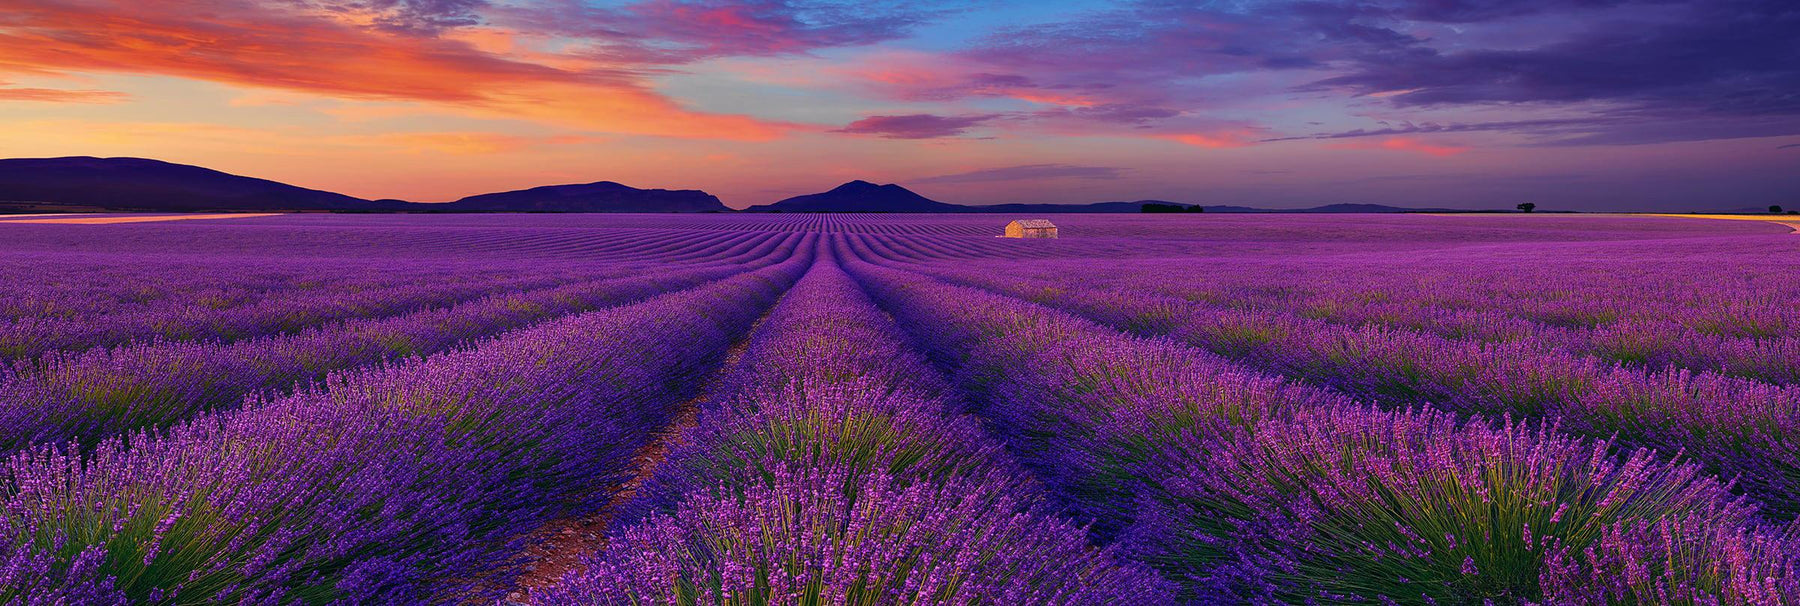 Purple rows of lavender leading to a shack and mountains under a cloudy sky at sunset in Valensole France